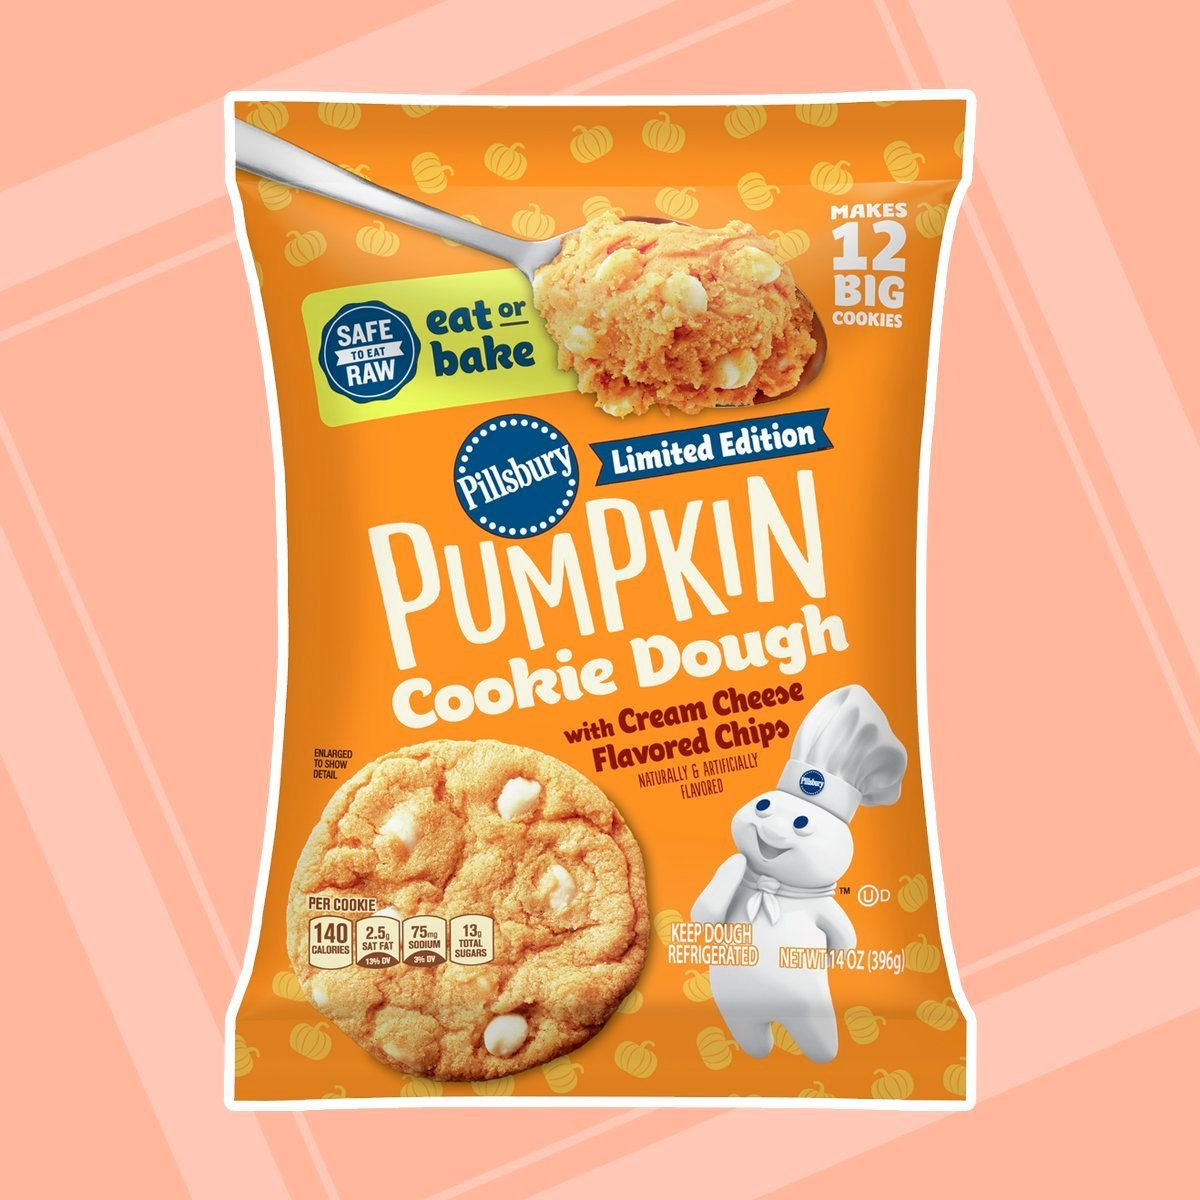 Pillsbury Ready to Bake! Pumpkin Cookies with Cream Cheese Chips, 14 Oz, 12 Count